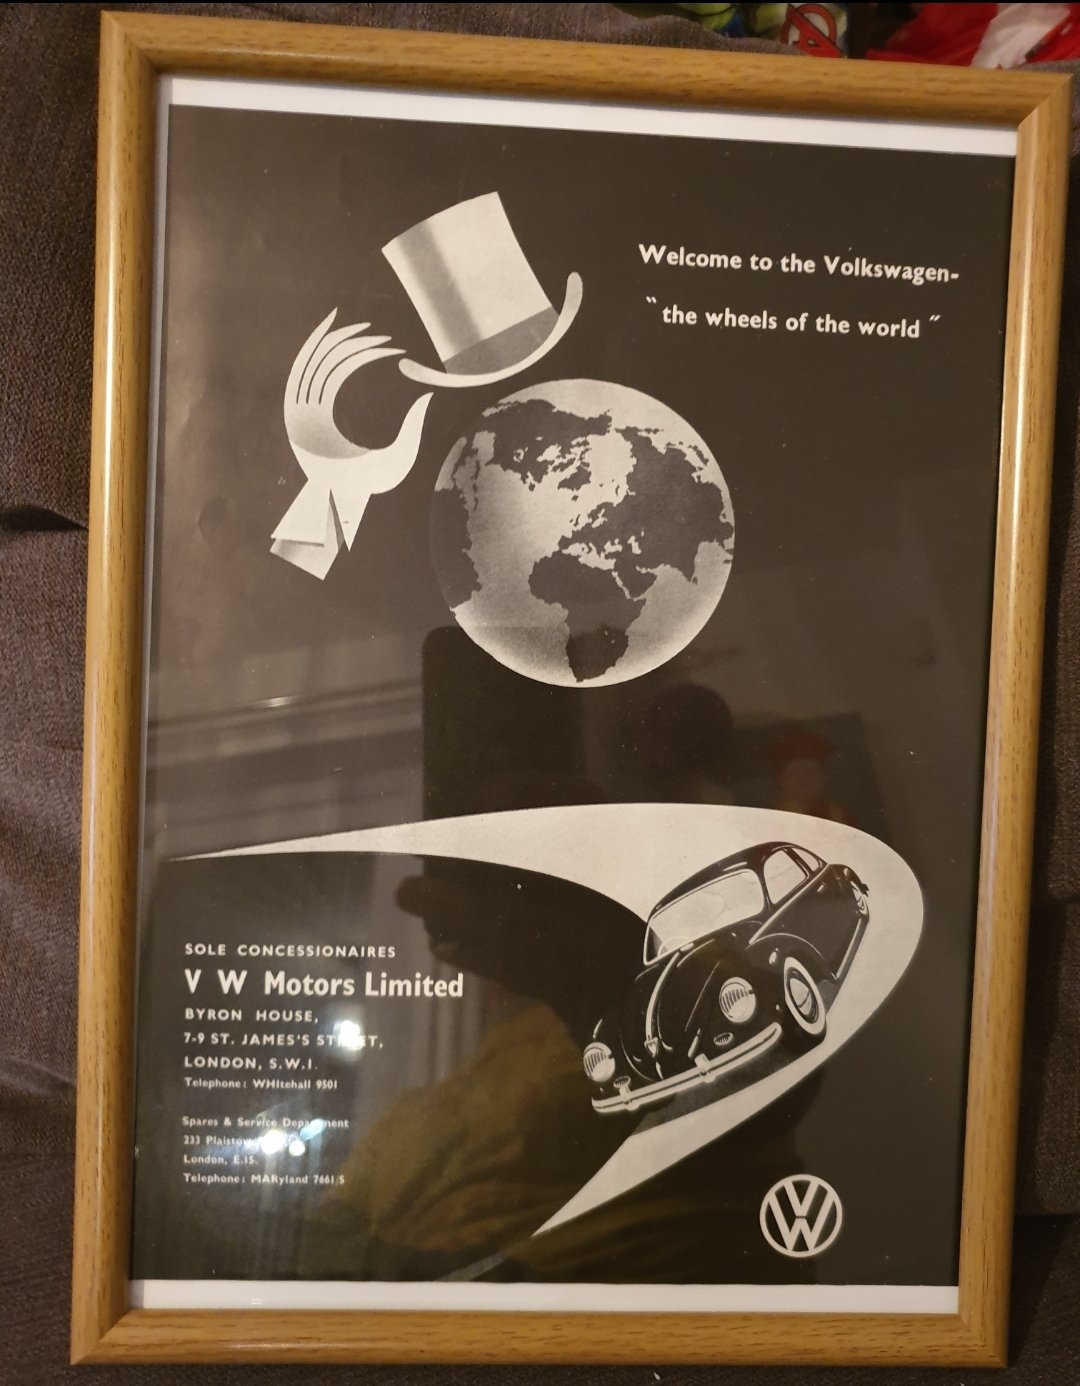 1956 Original Volkswagen Framed Advert For Sale (picture 1 of 3)